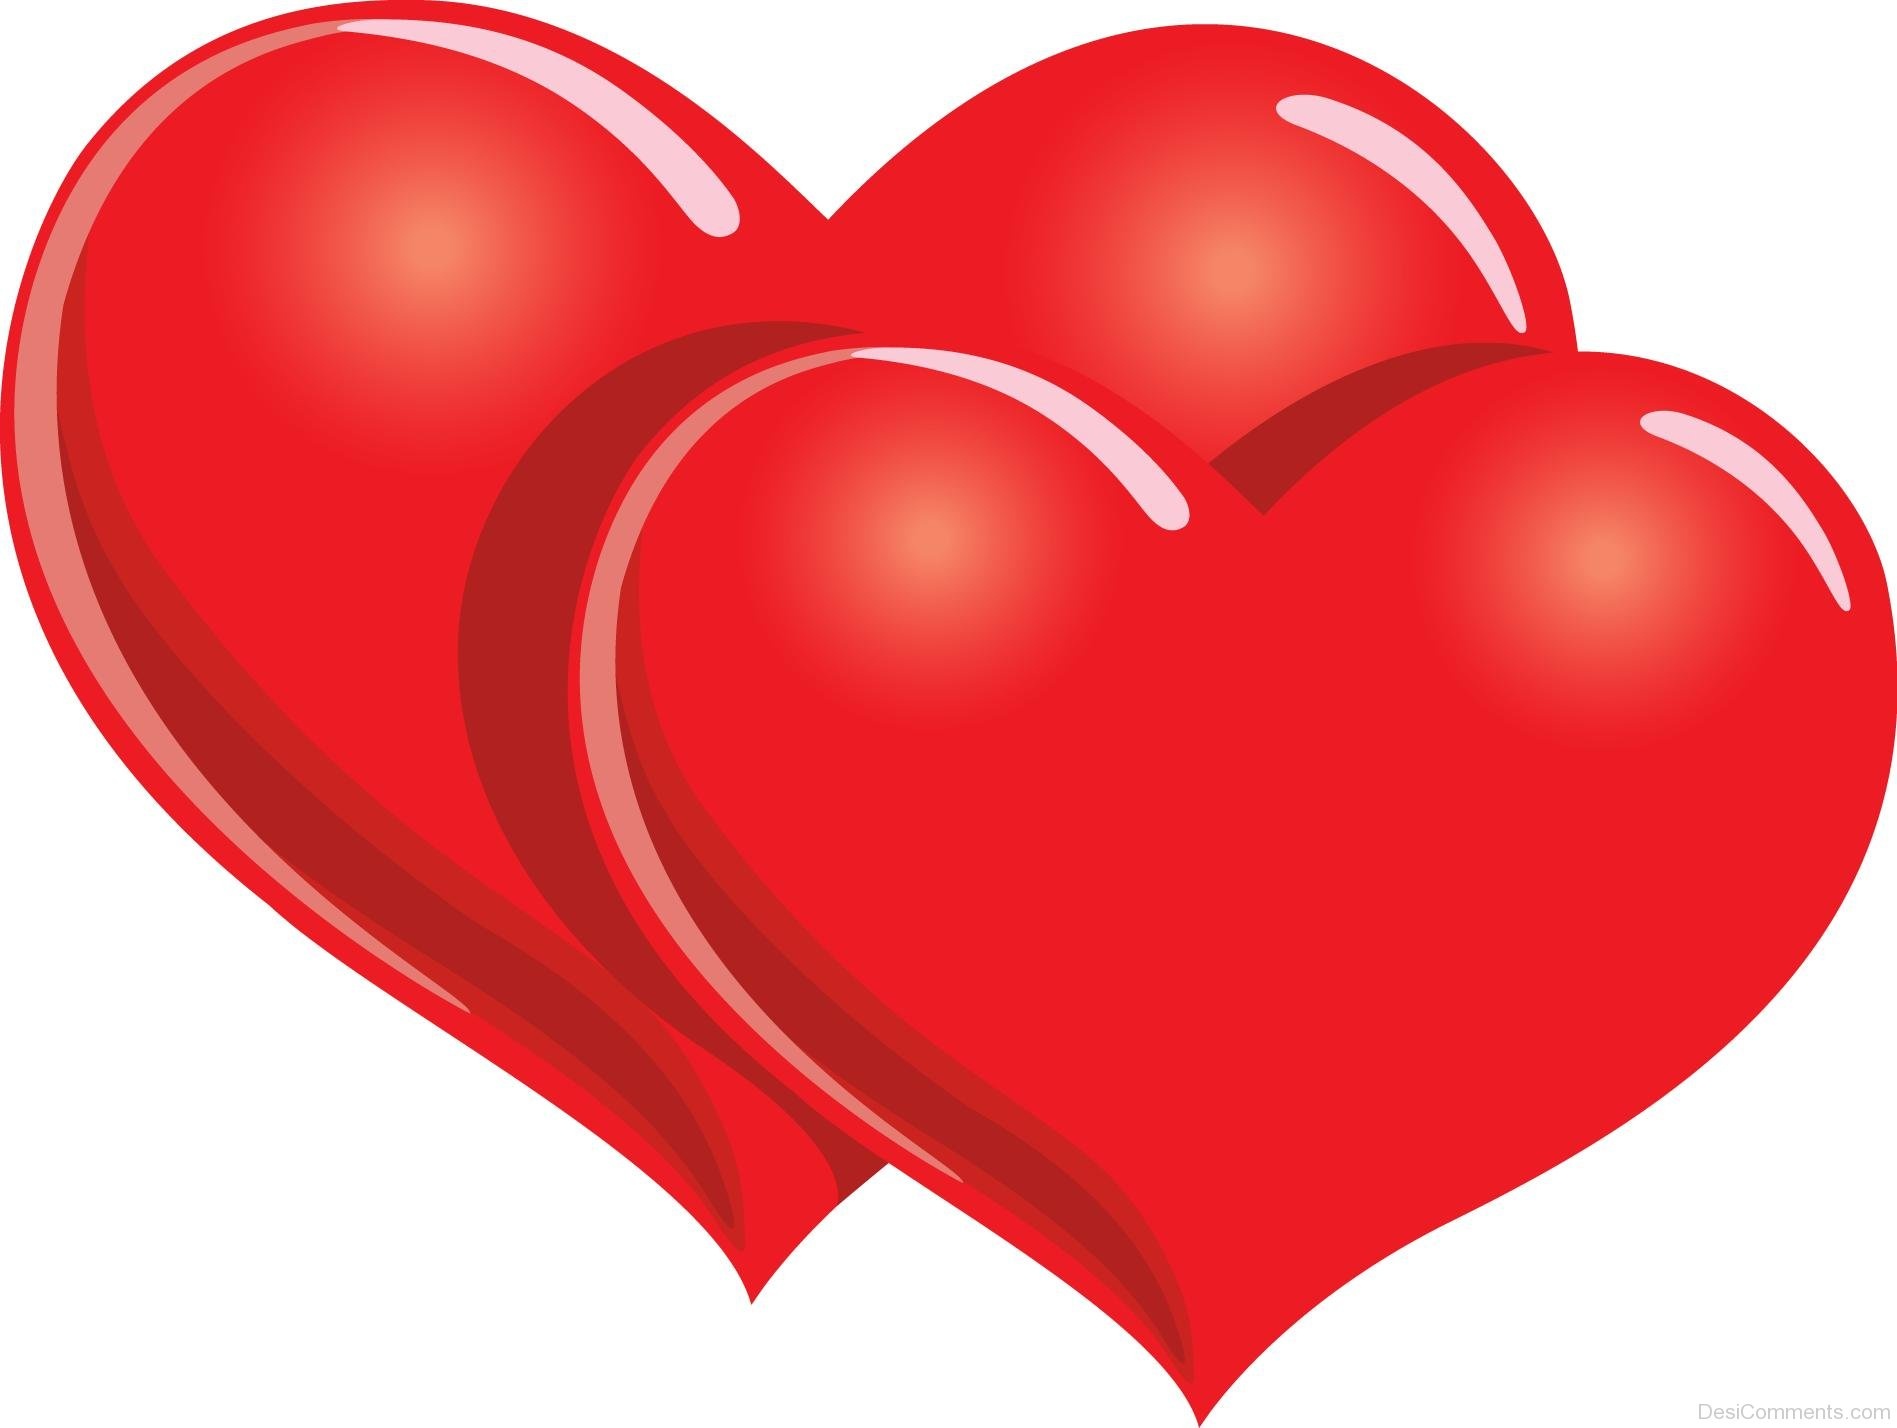 Two red hearts image desicomments com